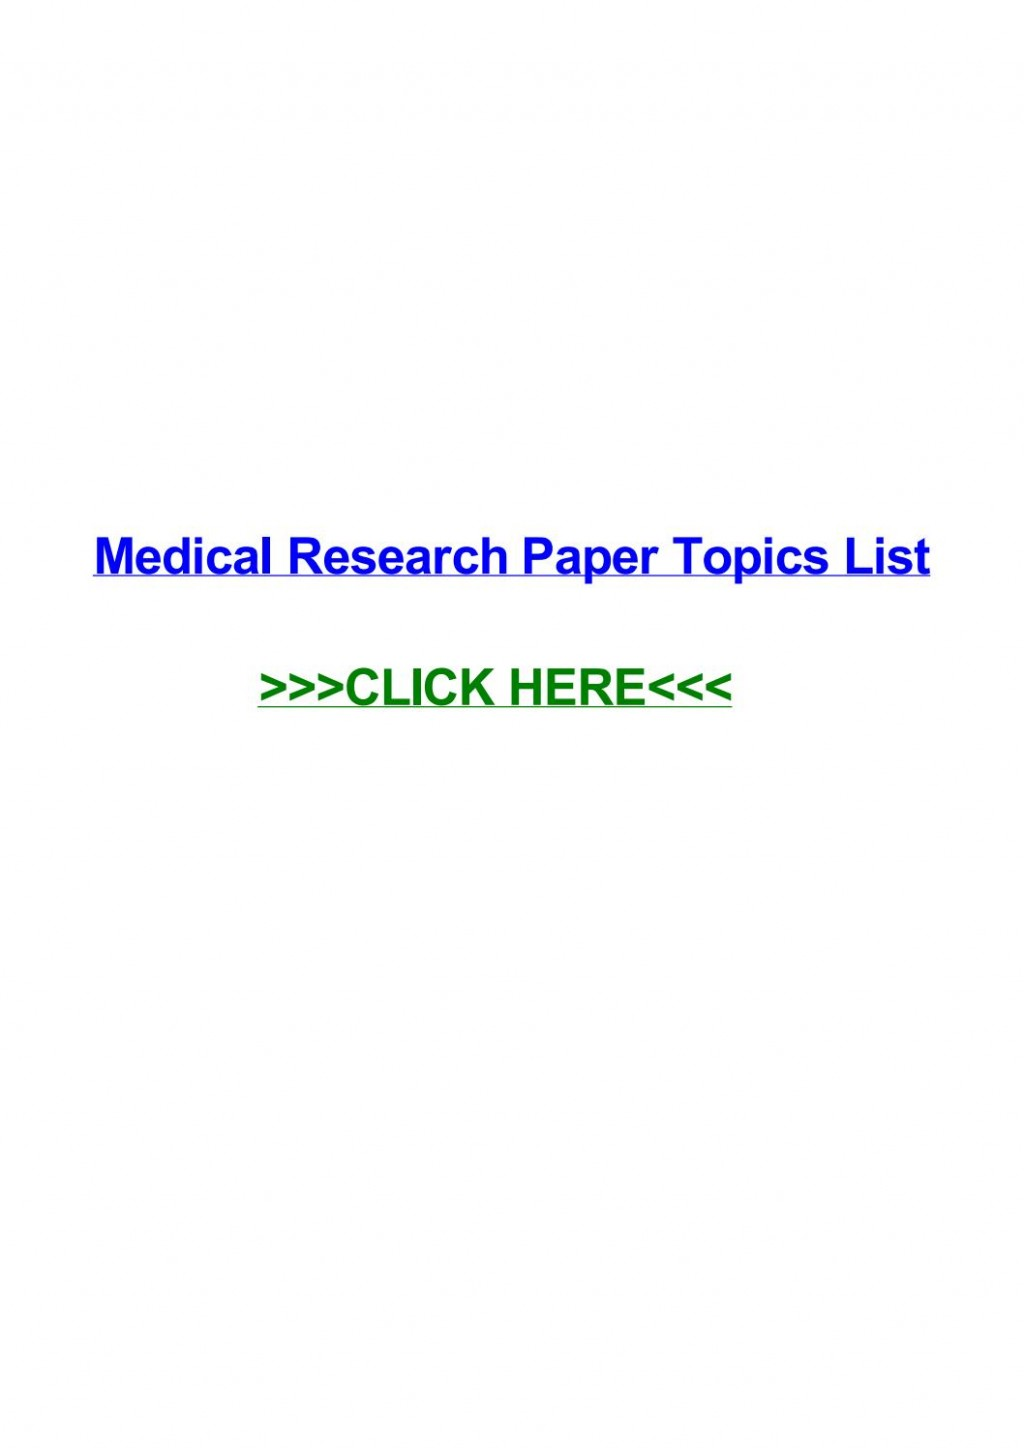 009 Research Paper Topics Medical Page 1 Impressive For Technology Students Malpractice Large